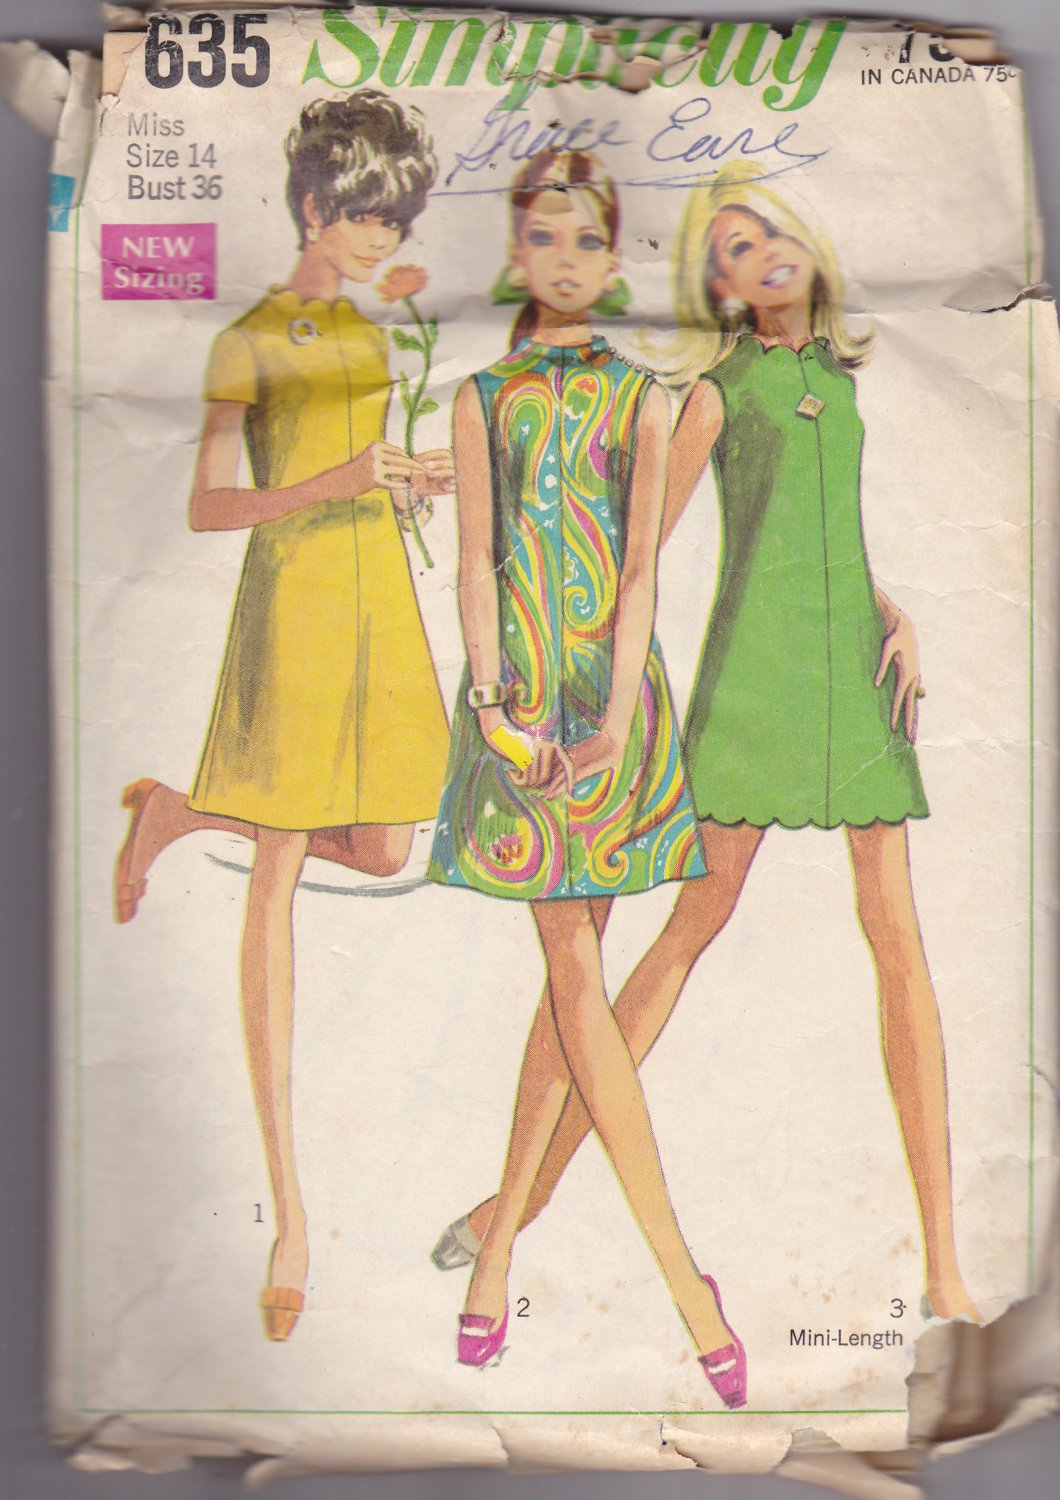 Simplicity 7635 Dress 14, may be missing pieces, 50 cents plus shipping